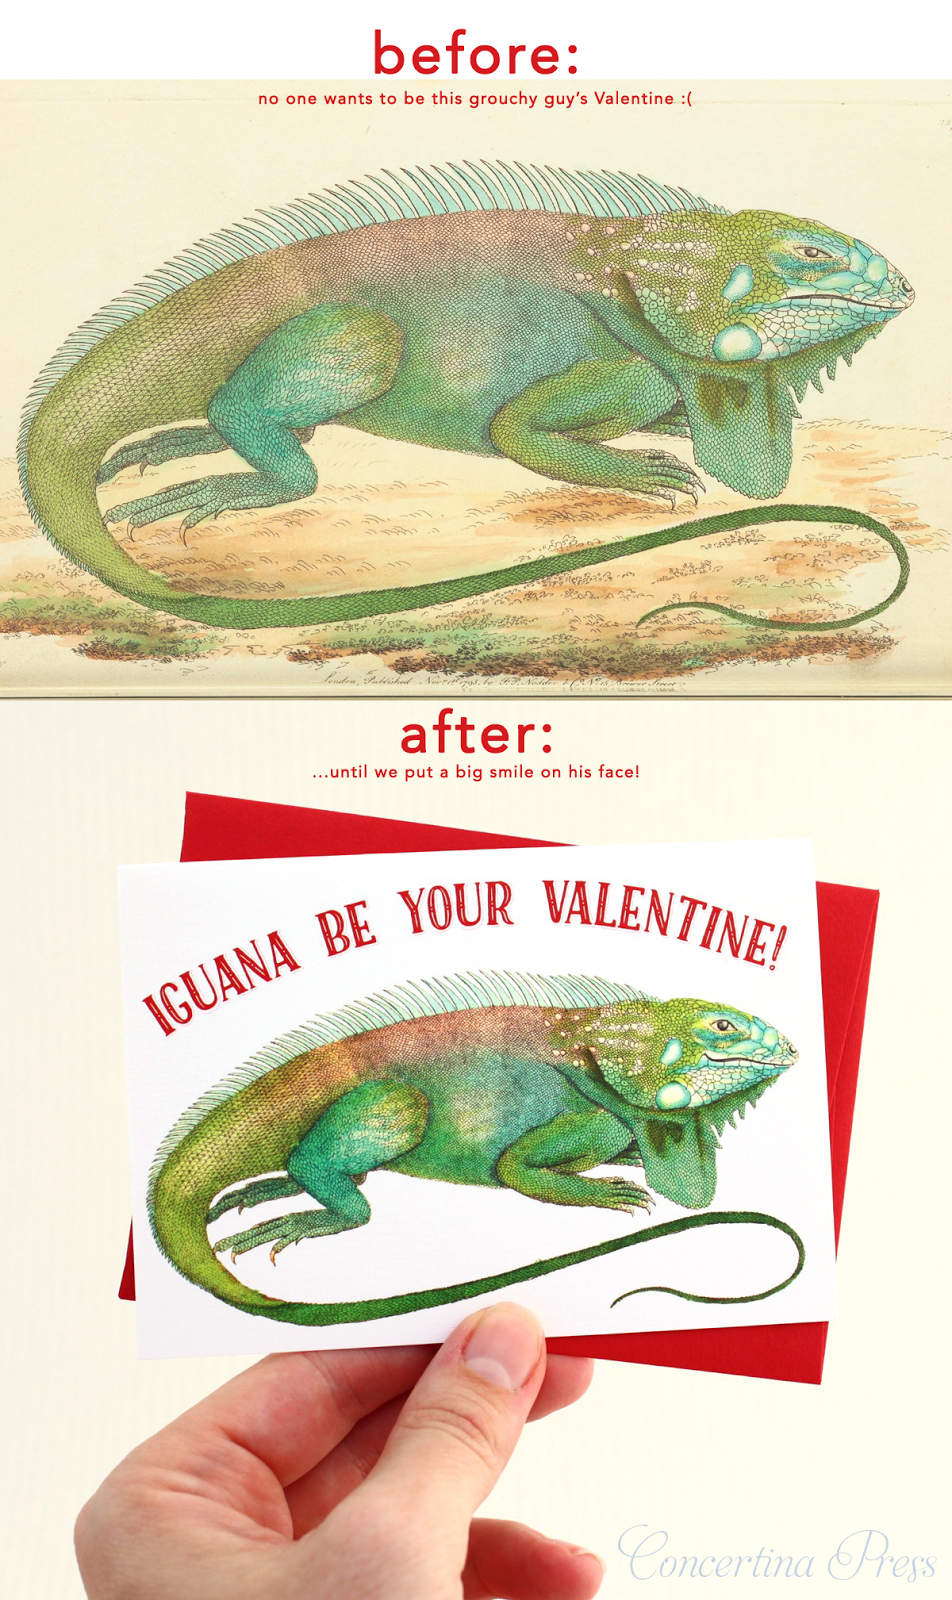 Iguana Be Your Valentine card from Concertina Press